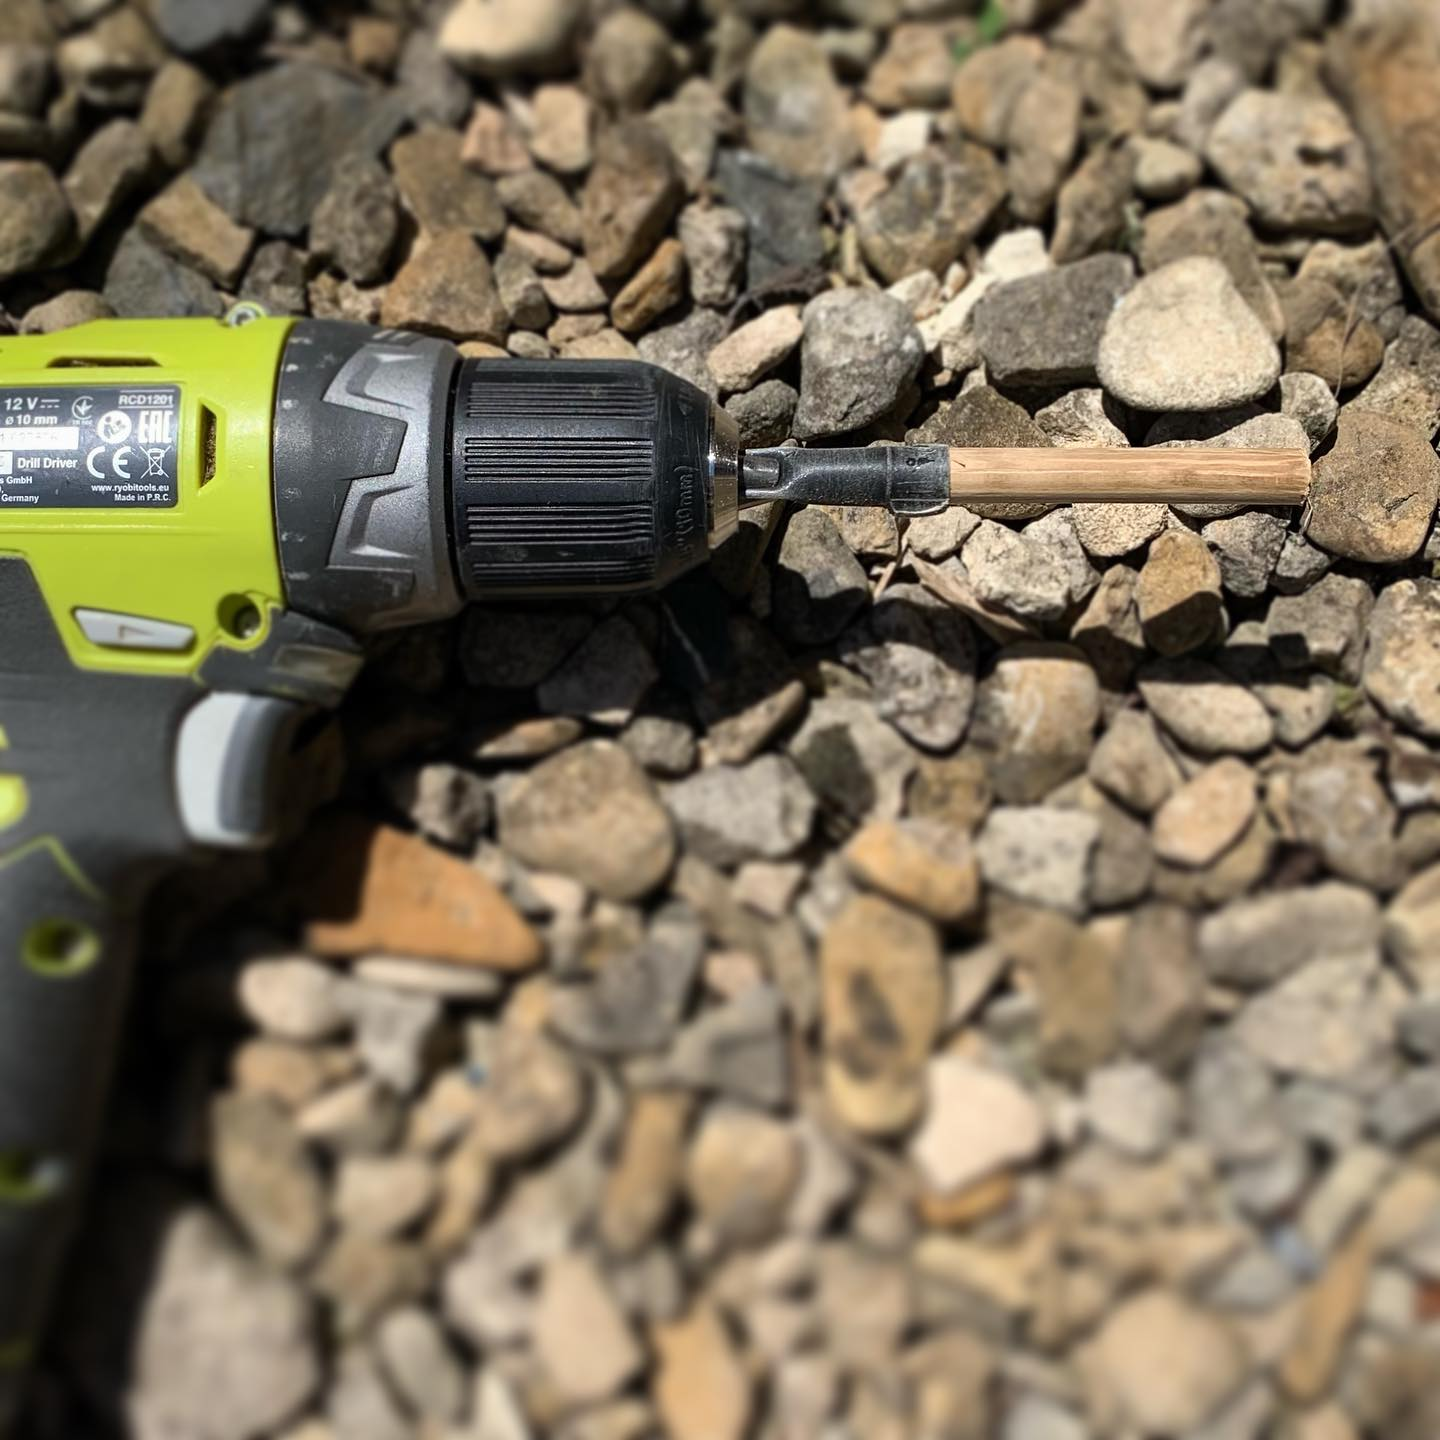 Sometimes the simplest things bring us joy! A Pen lid fixed to a drill … genius idea by Tweed. Hand sanding this tiny dowel for our oak picture frames was once a time consuming and arm aching task, not any more! ..#toolshed #hack #makingthings #handcrafted #ryobi #